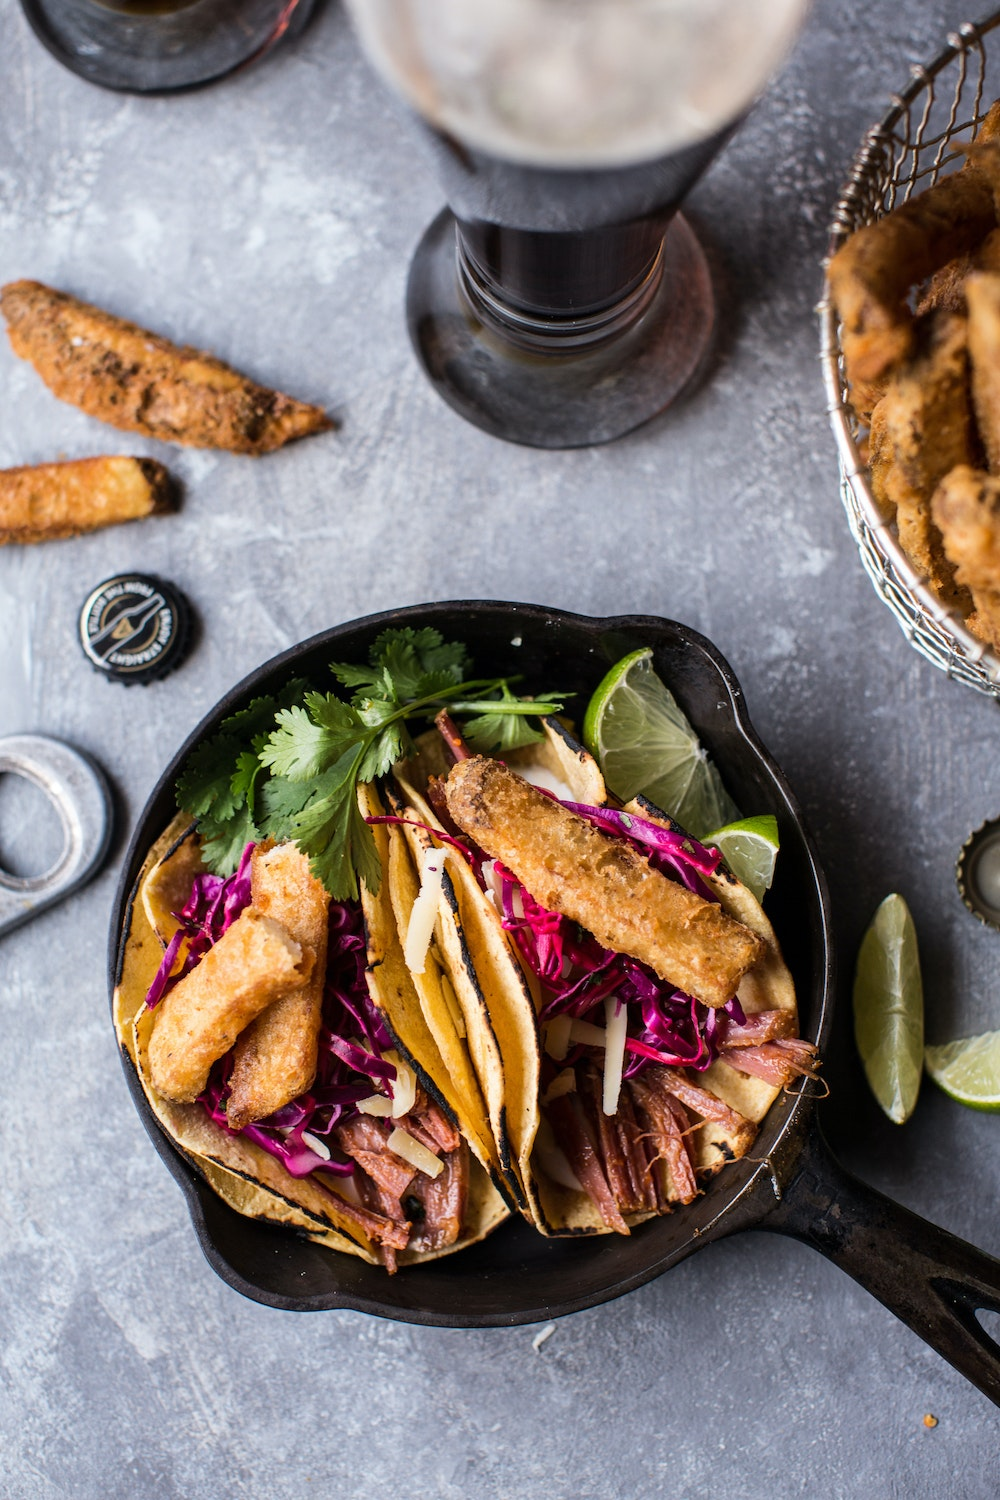 Corn-Beef-Tacos-with-Beer-Battered-Fries-7